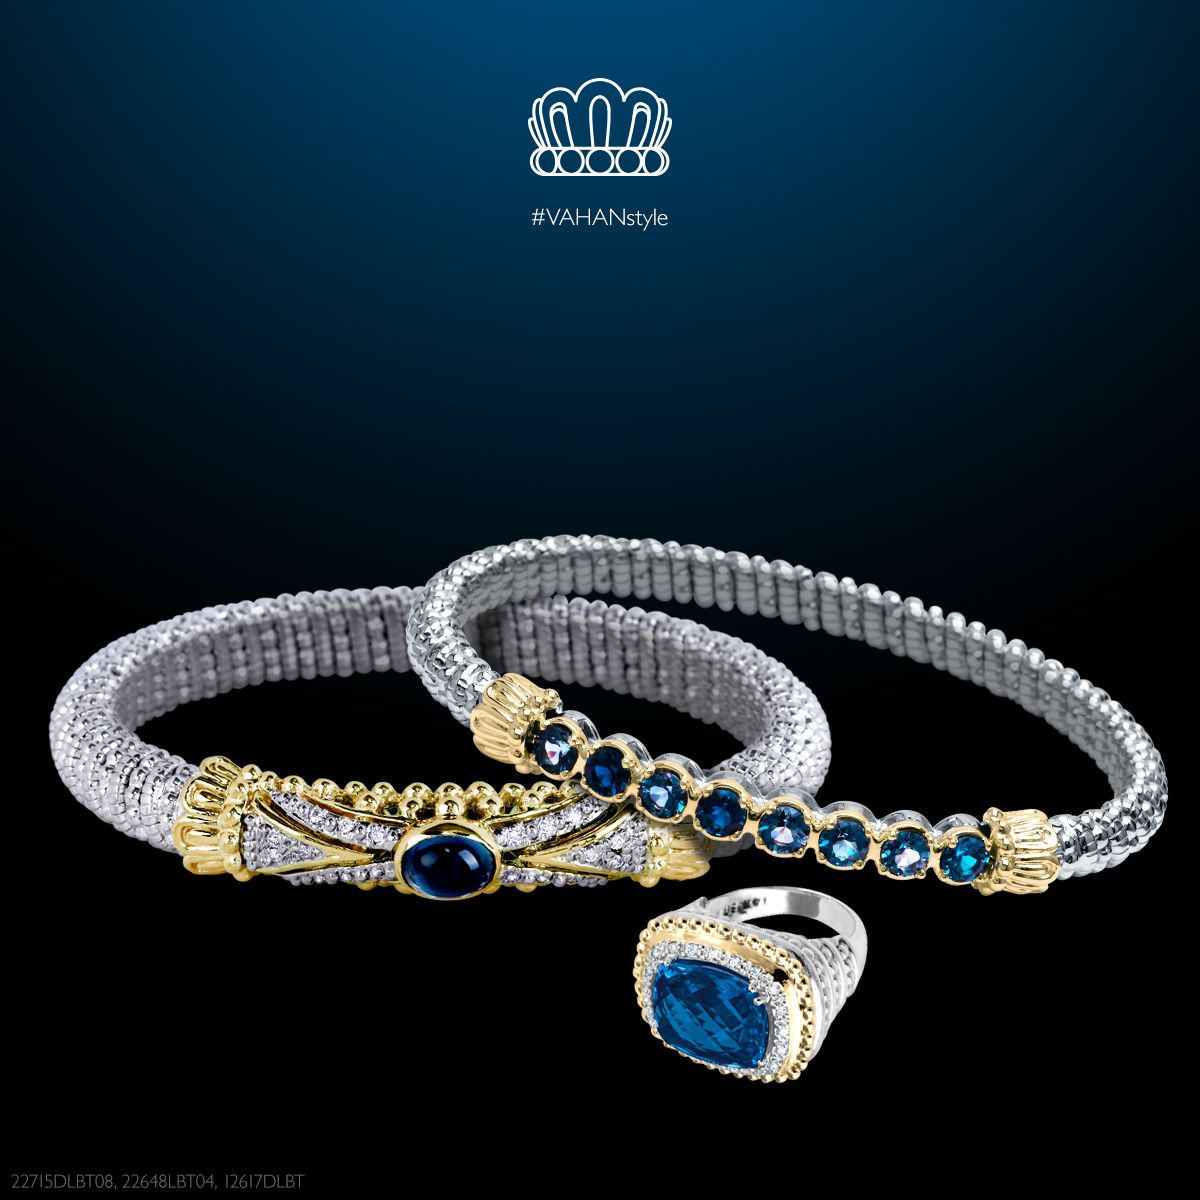 Show some color this weekend! #VAHAN #VAHANstyle #Bracelet #Gold #Silver #Diamonds #Gems